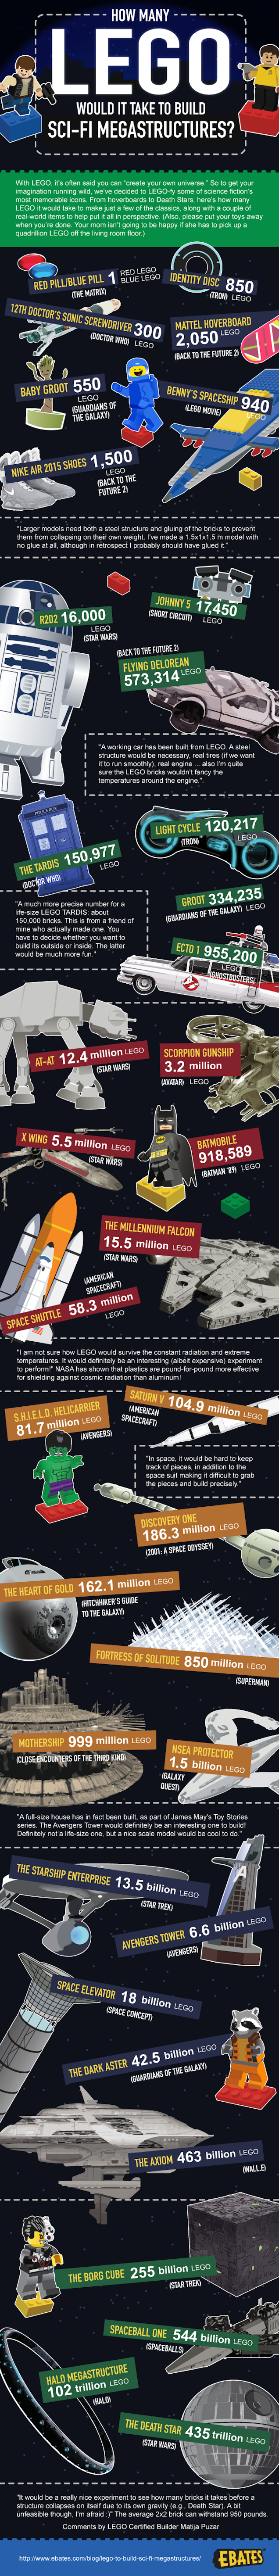 How Many Lego Bricks Would It Take to Build Famous Sci-Fi Structures and Vehicles